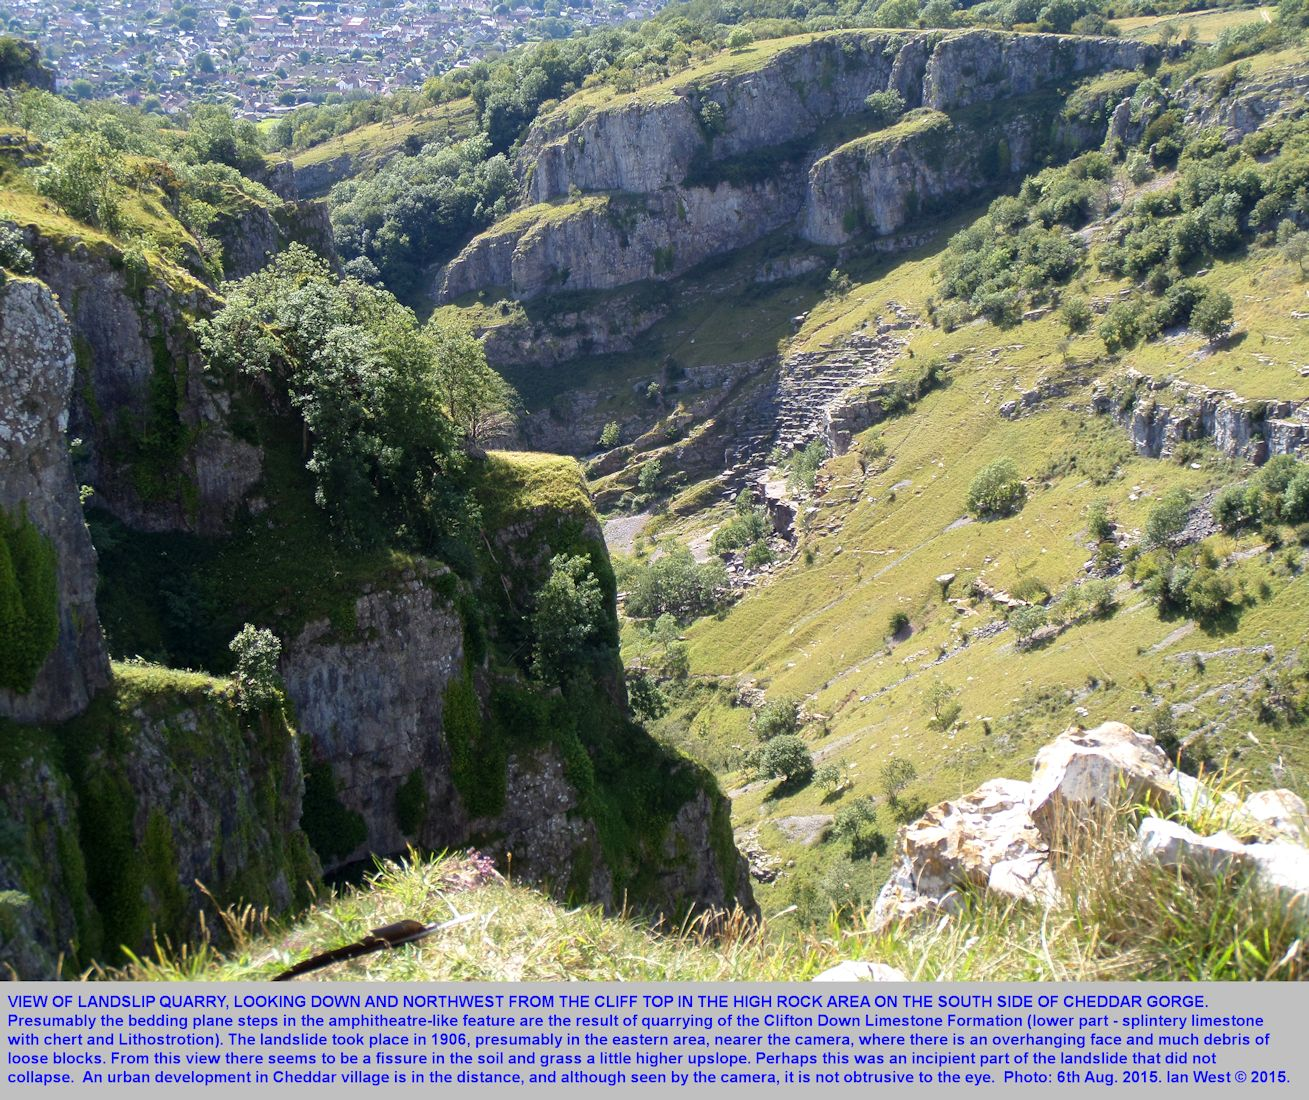 A view obliquely downwards towards Landslip Quarry in Cheddar Gorge, Mendip Hills, Somerset, taken from near High Rock